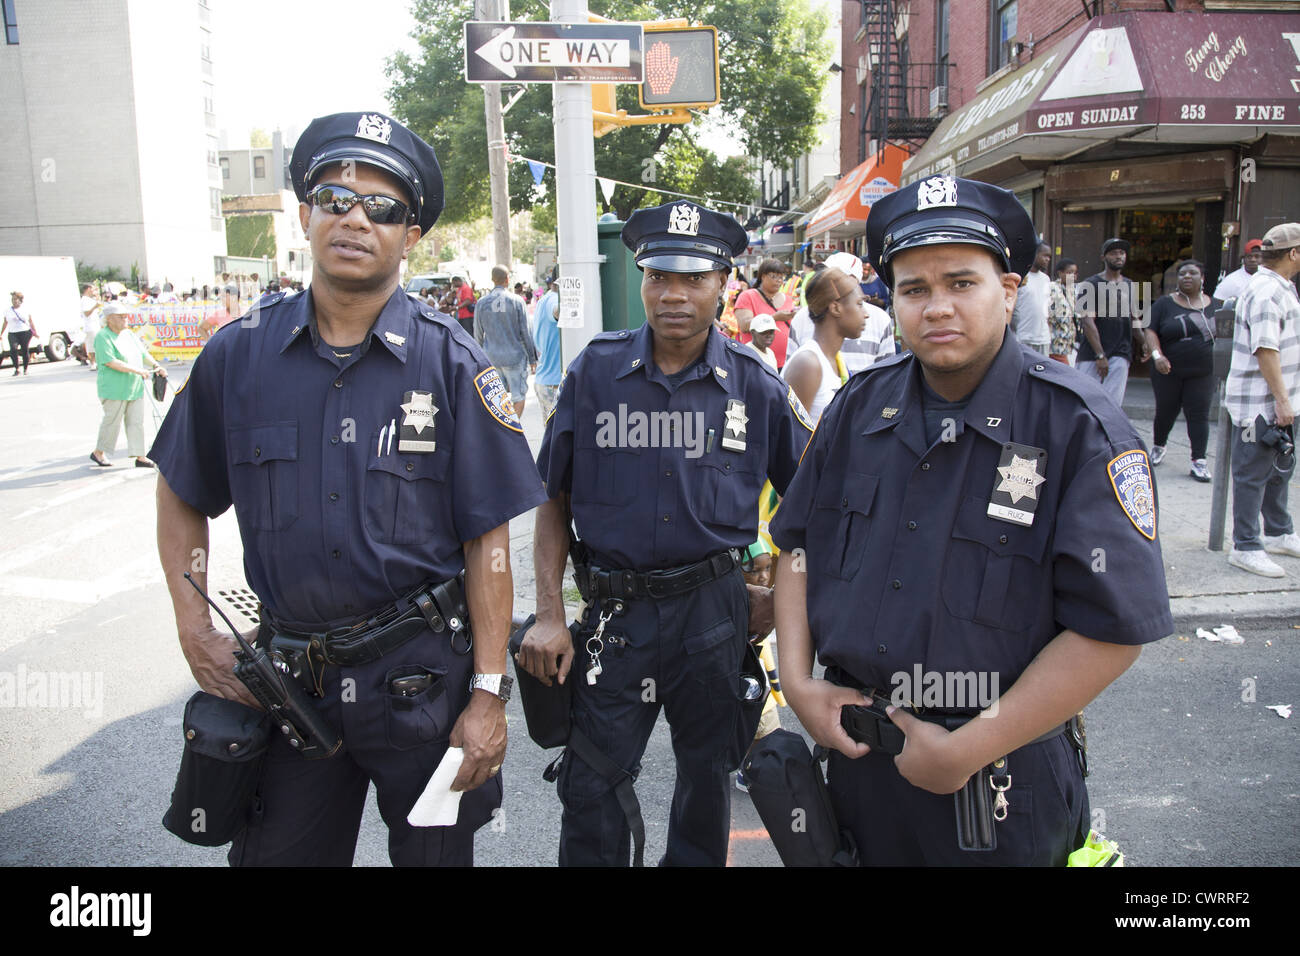 NYPD Auxiliary Police officers working a parade in Crown Heights Brooklyn, NYC. - Stock Image